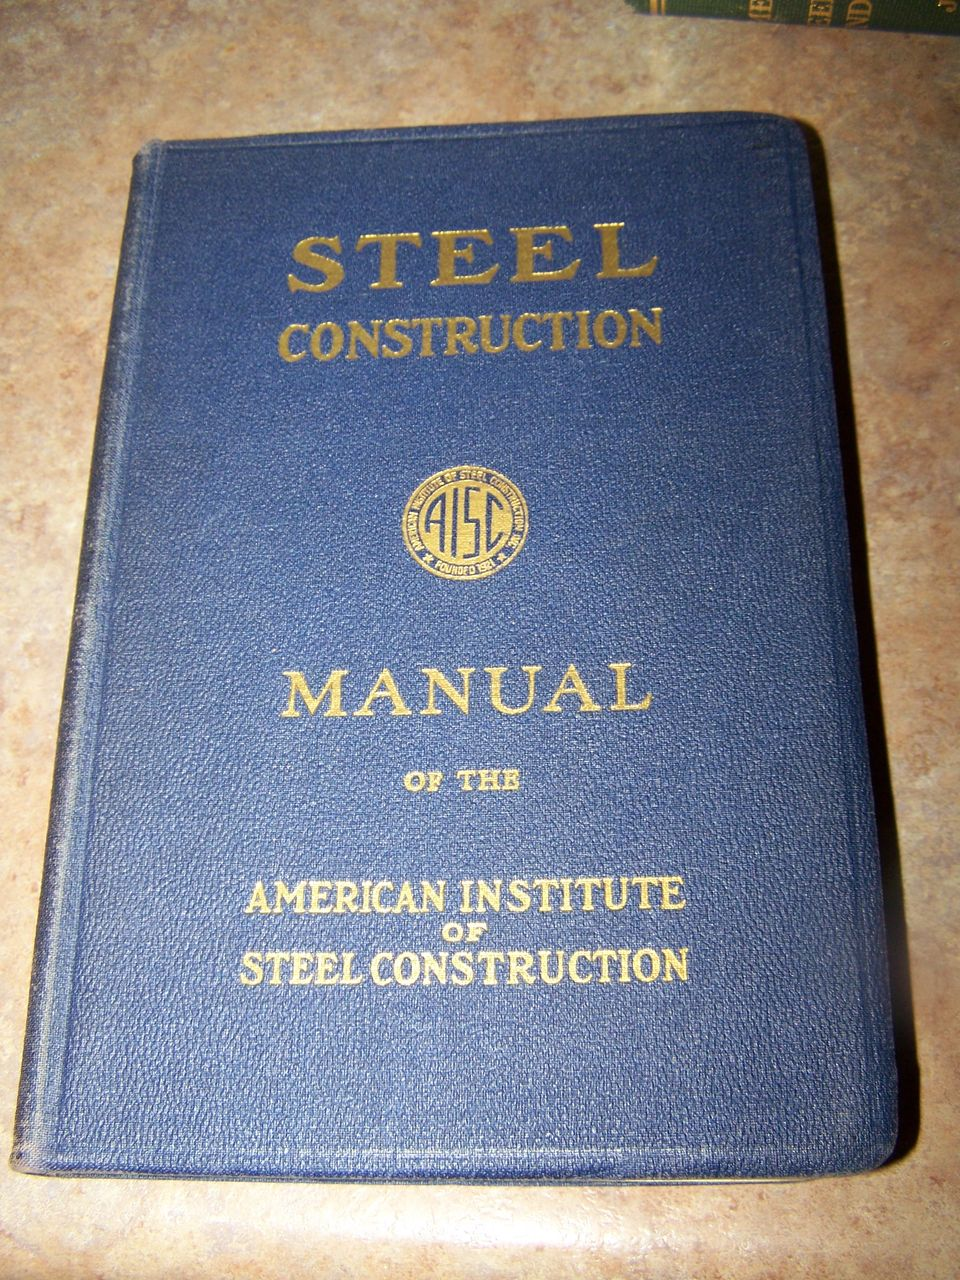 Steel  Construction Manual of The American Institute of Steel Construction  C. 1947